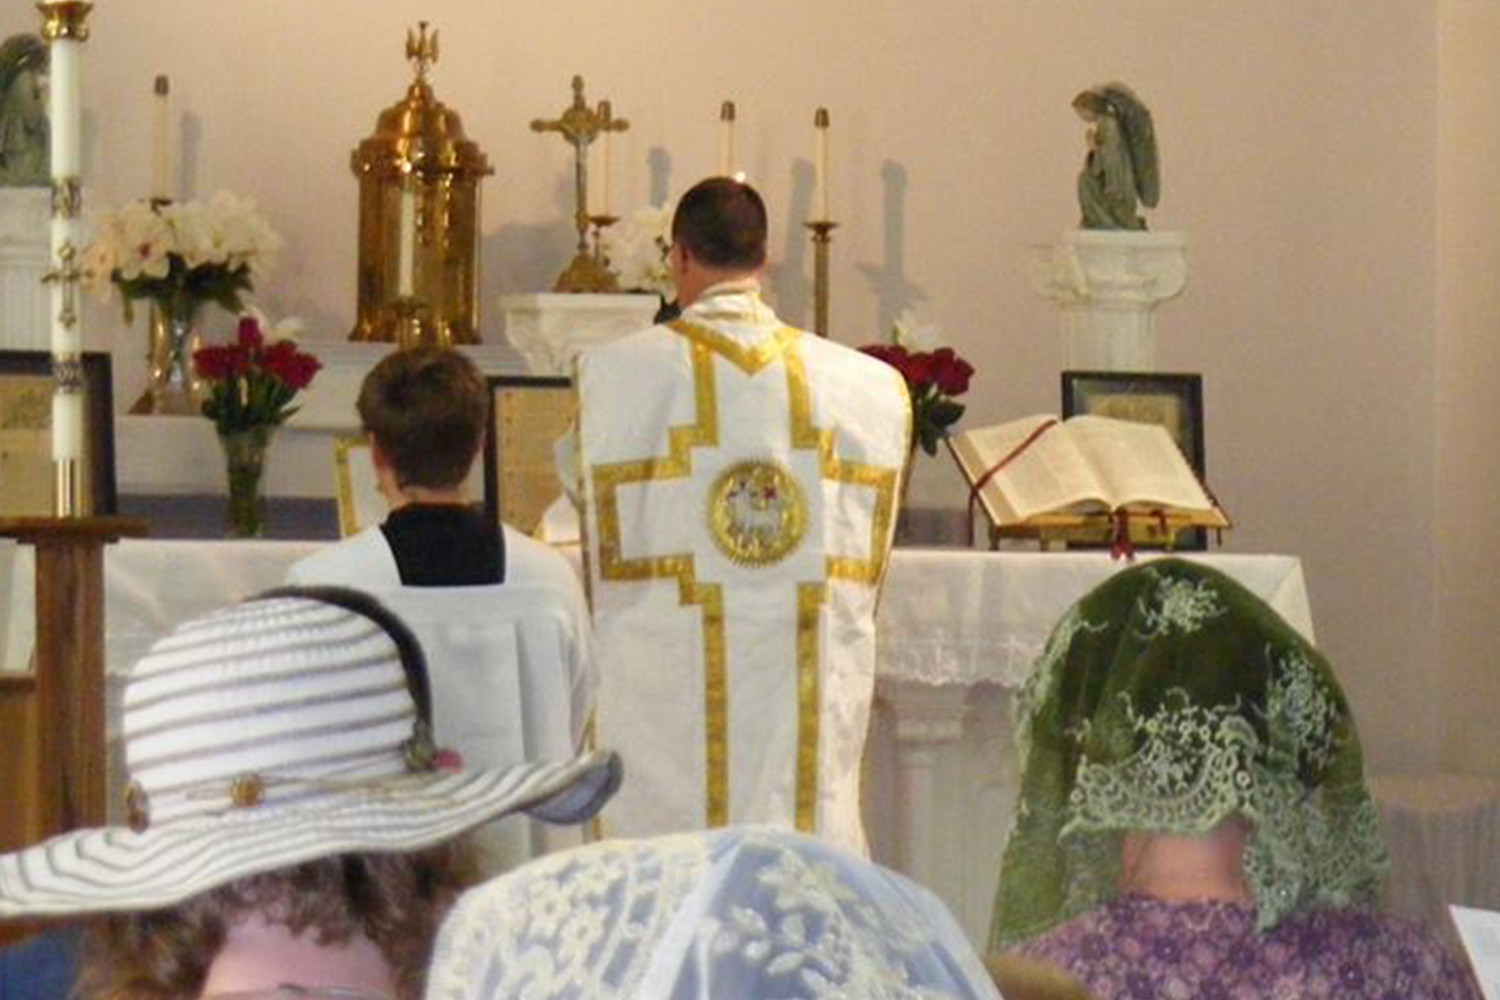 Father Kevin Drew, a priest of the Diocese of Kansas City-St. Joseph, offers Mass in the extraordinary form in Latin on May 6 in St. Rose of Lima Church in Novinger.